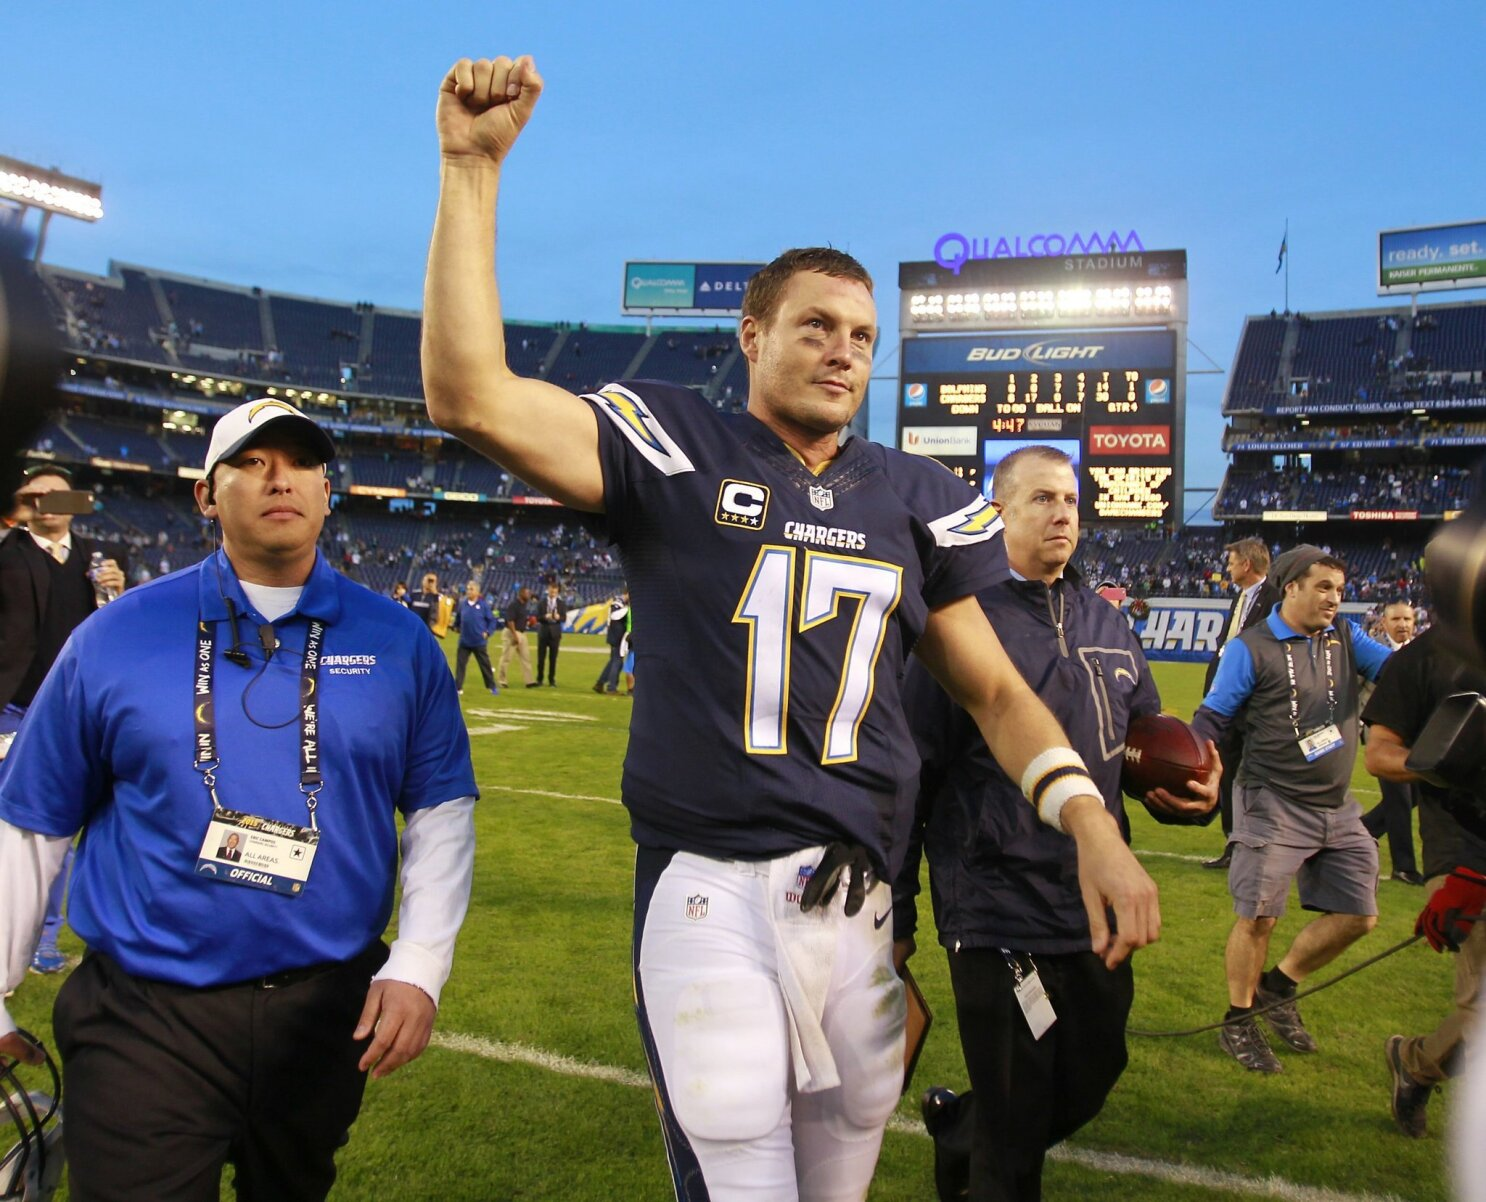 Column Philip Rivers Was Last Link To Chargers San Diego Era The San Diego Union Tribune